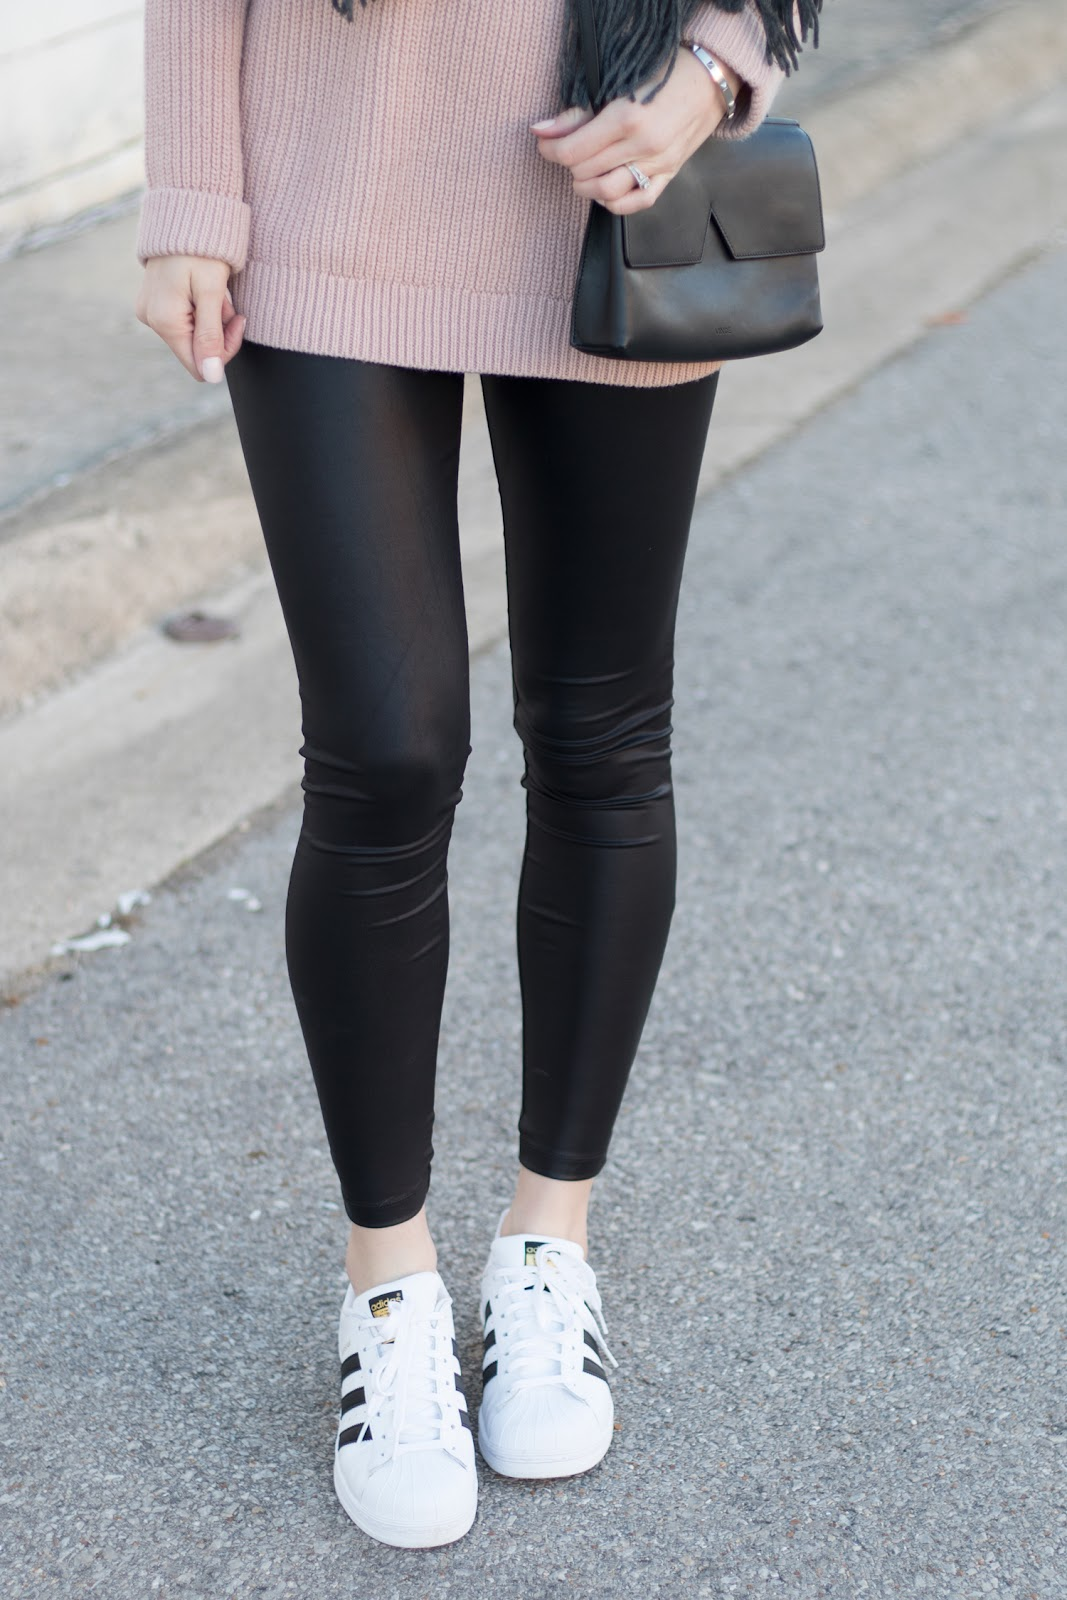 Adidas Tennis Shoes Outfit Ideas